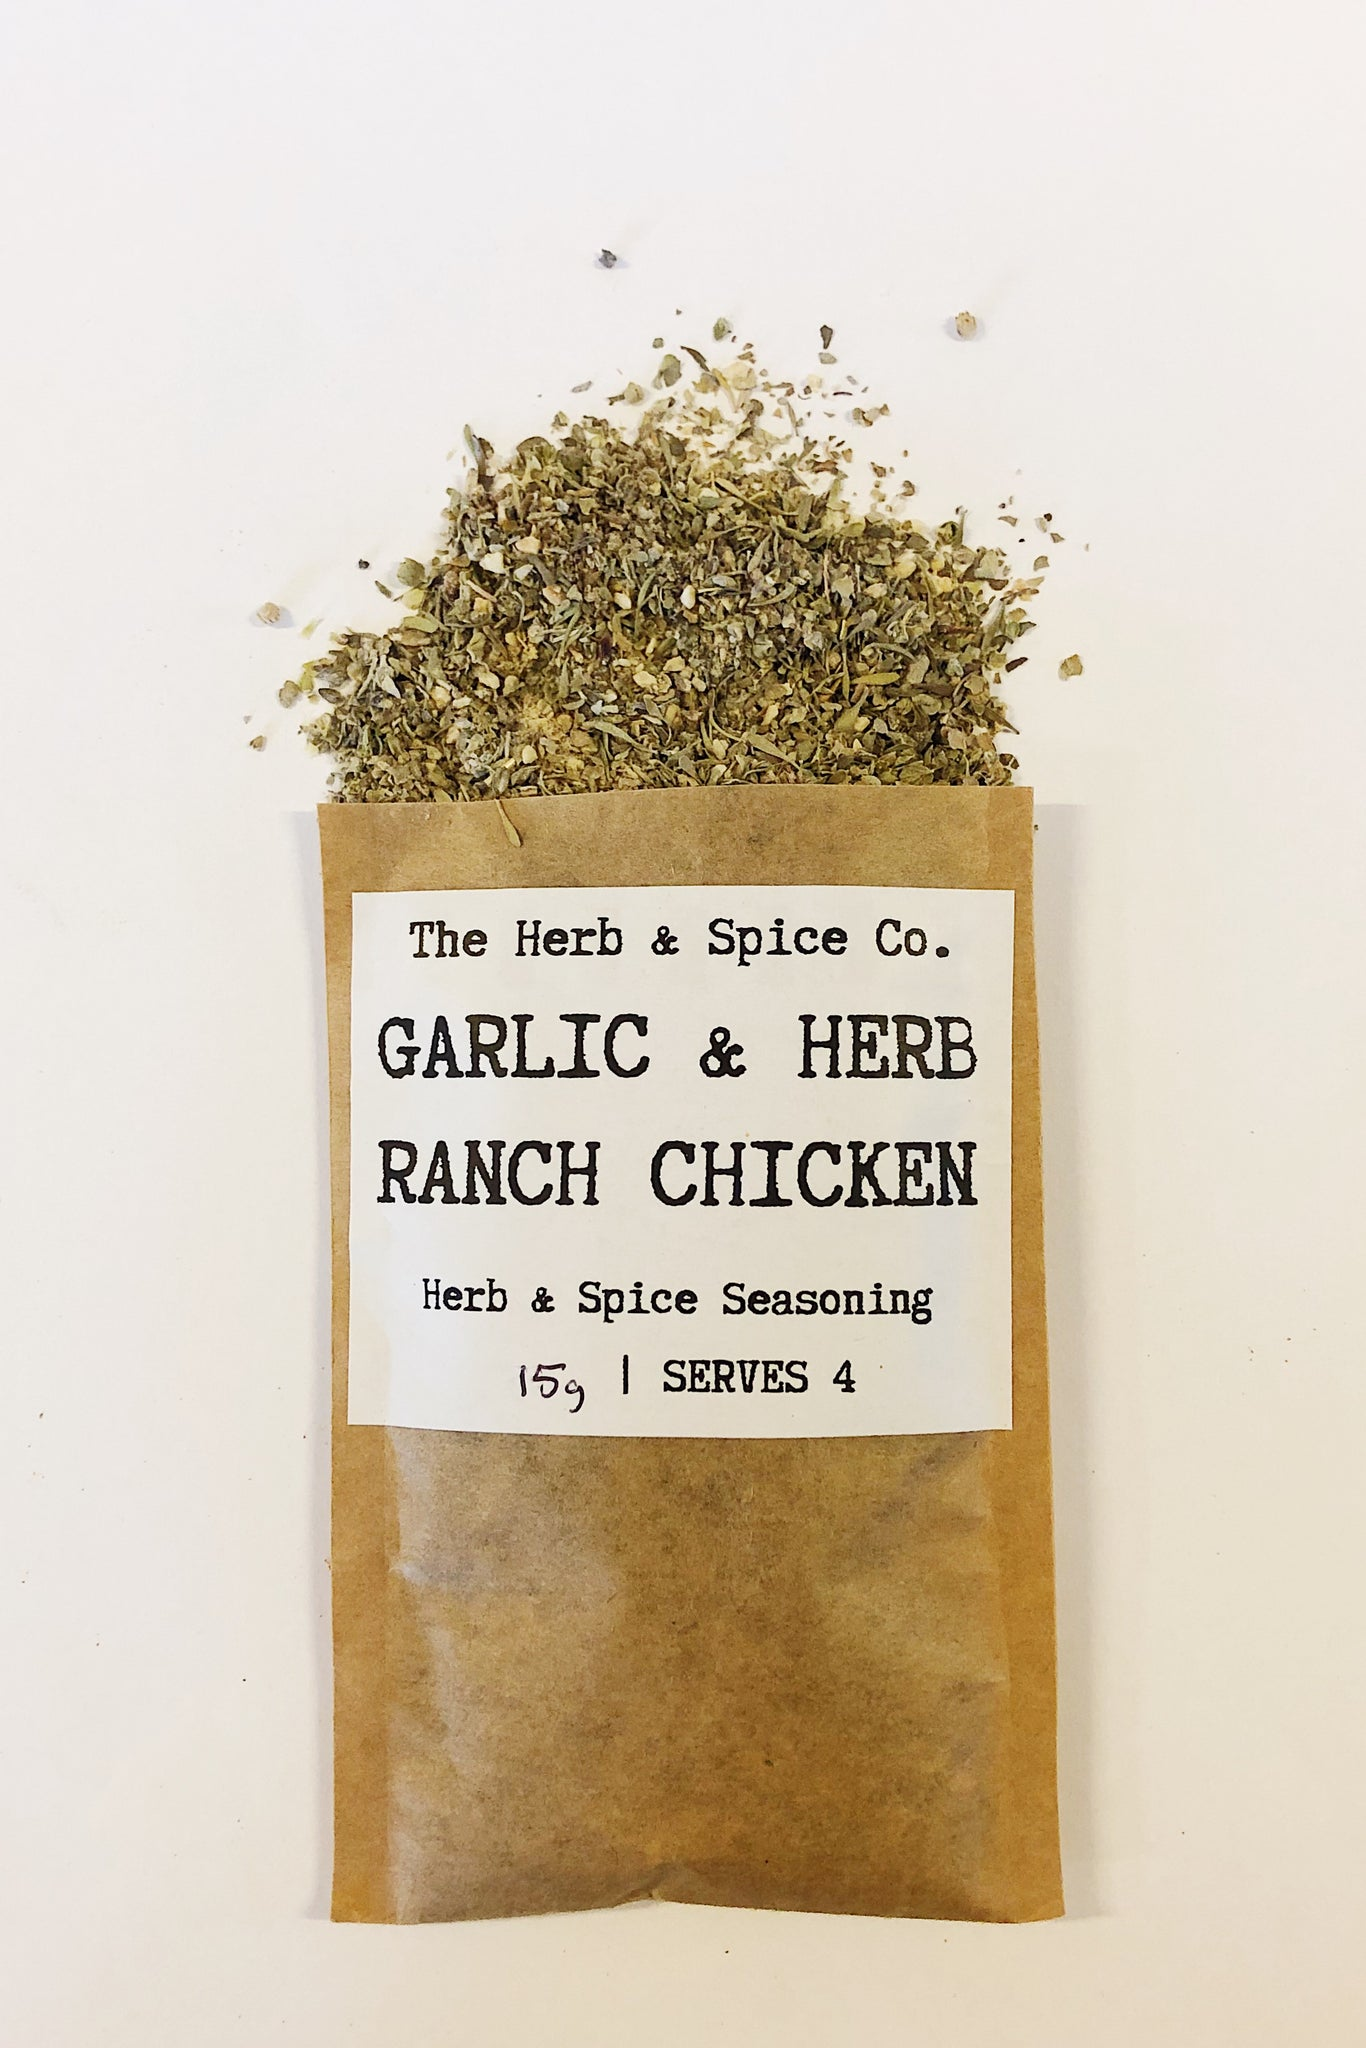 Garlic and Herb Ranch Chicken Slimming World Seasoning The Herb & Spice Co. Seasoning Blend Herbs Spices Recipe Mix